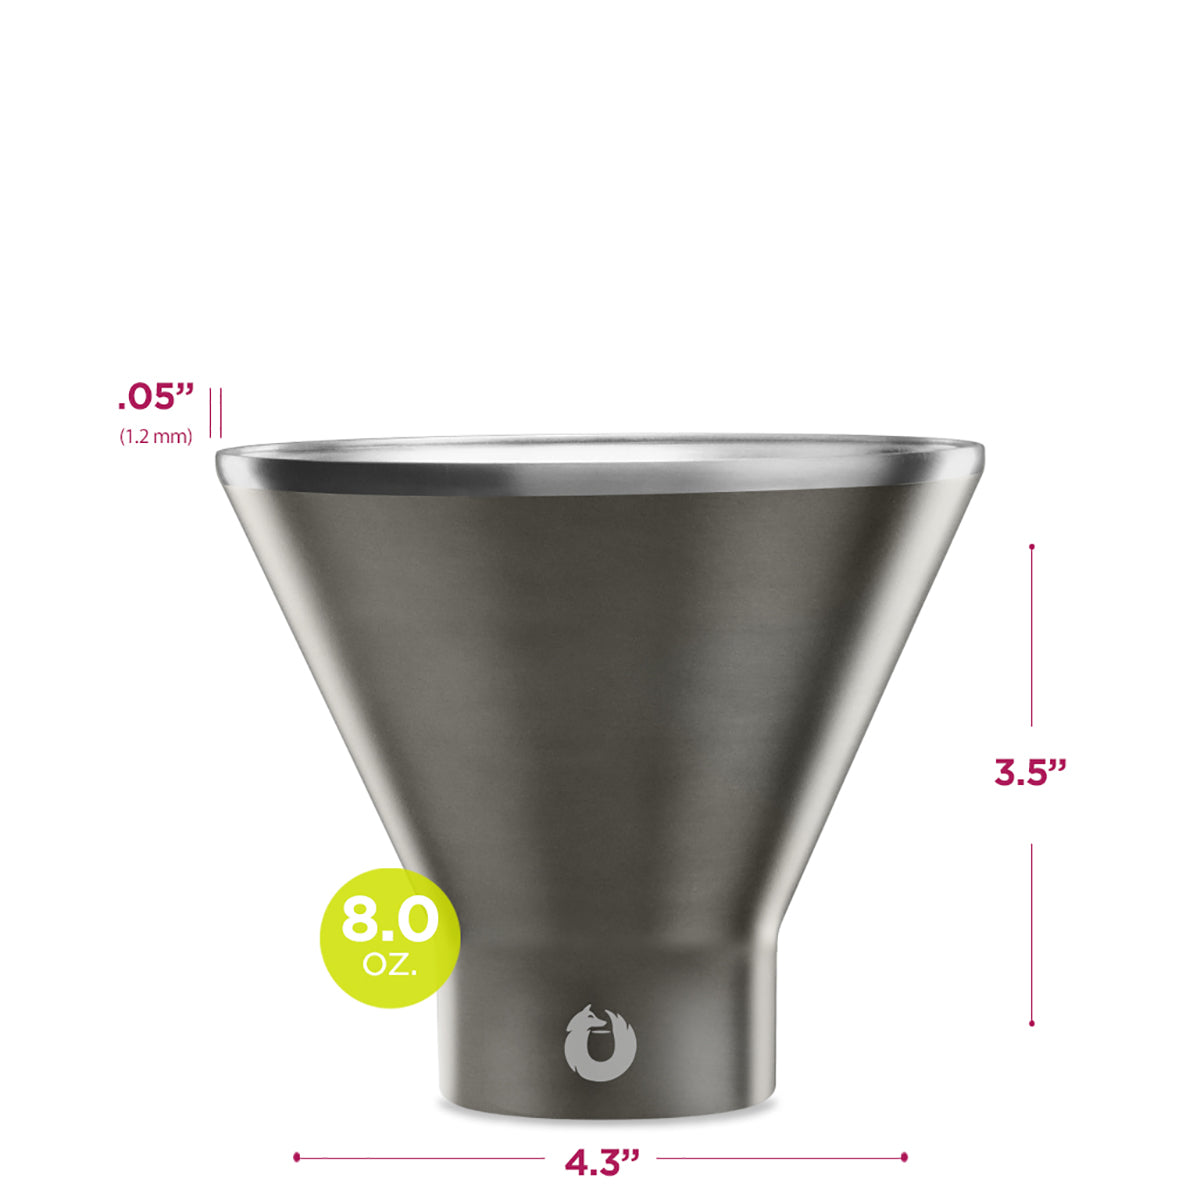 Stainless Steel Martini Glass in Olive Grey - Dimensions